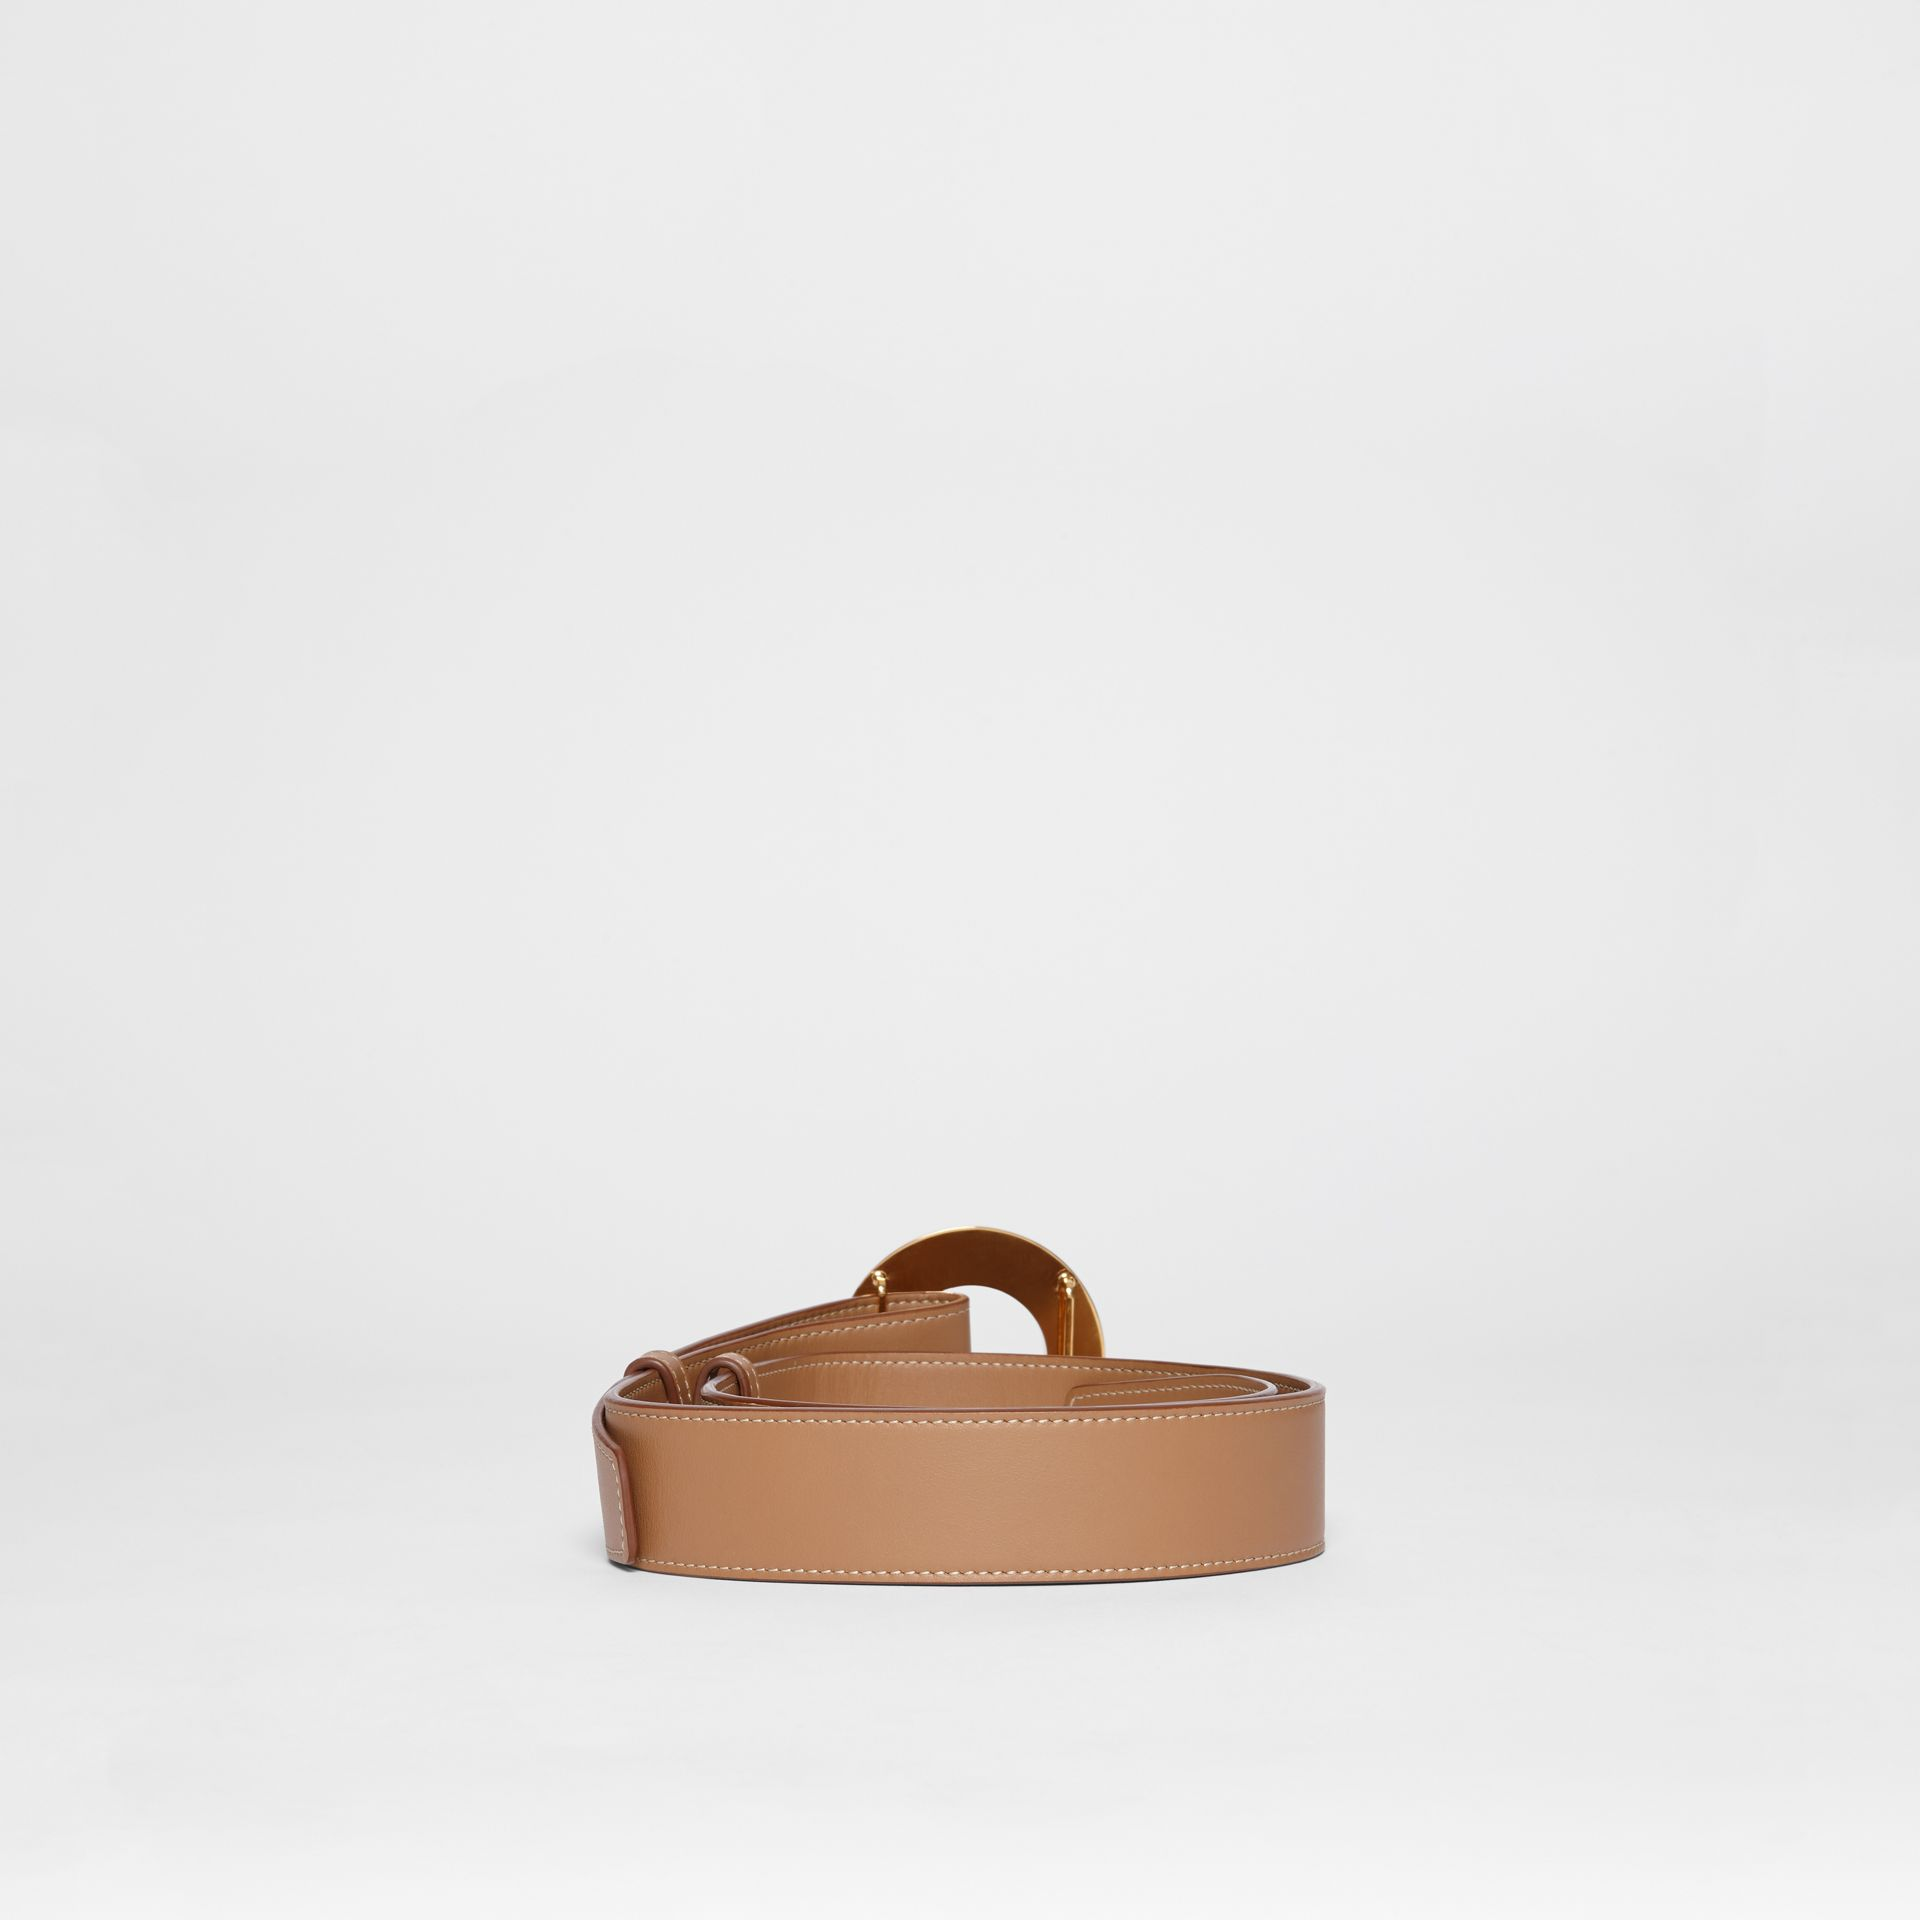 Porthole Buckle Leather Belt in Light Camel - Women | Burberry - gallery image 3